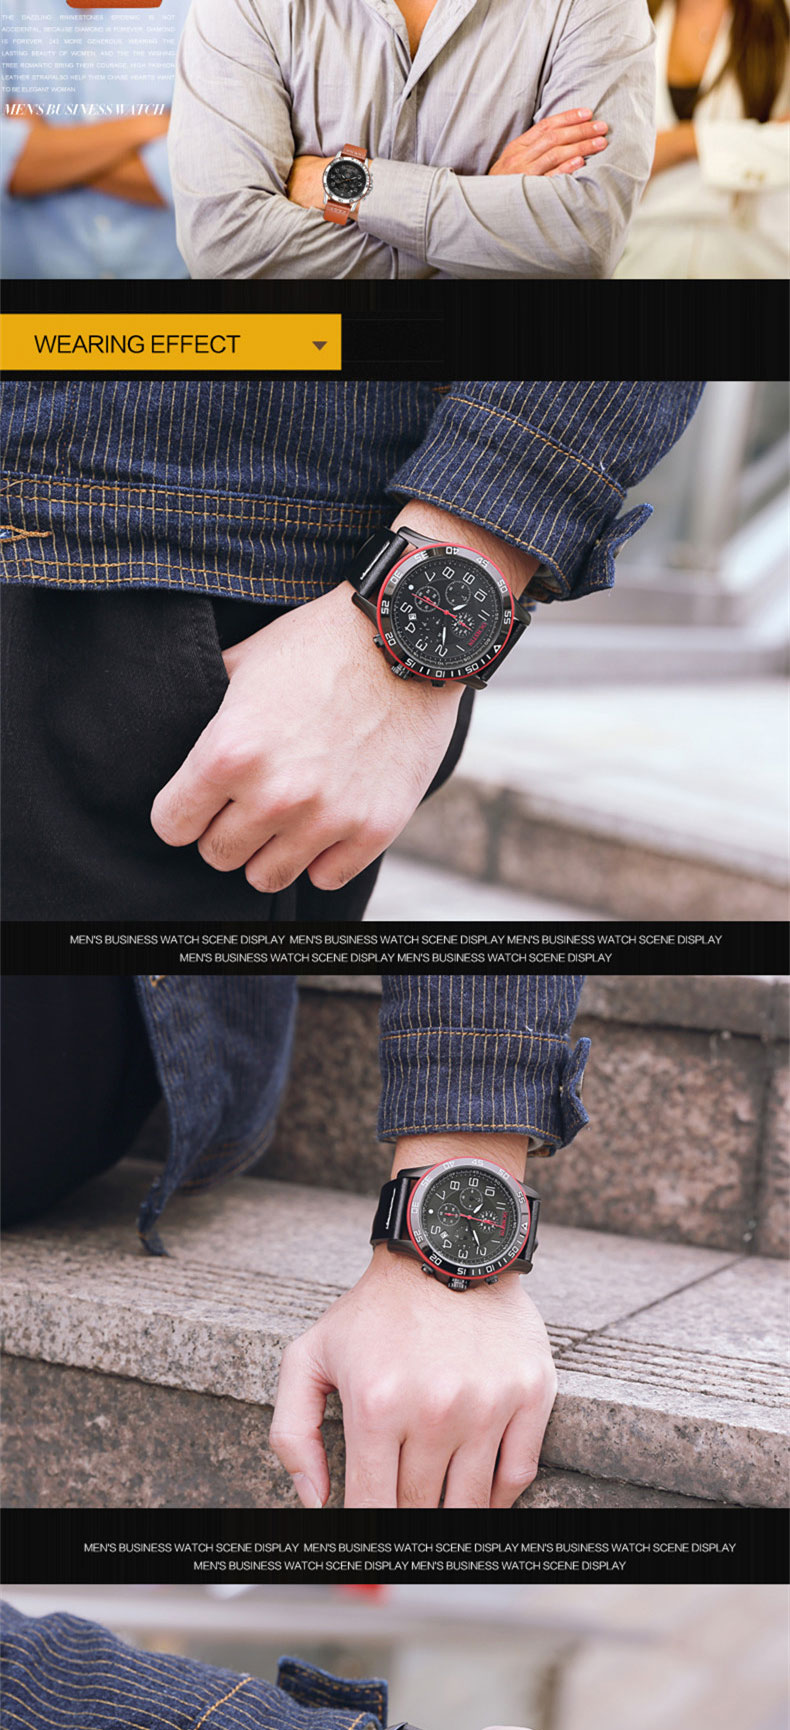 17 Men Watches Luxury Top Brand OCHSTIN Sports Chronograph Fashion Male Dress Leather Belt Clock Waterproof Quartz Wrist Watch 7